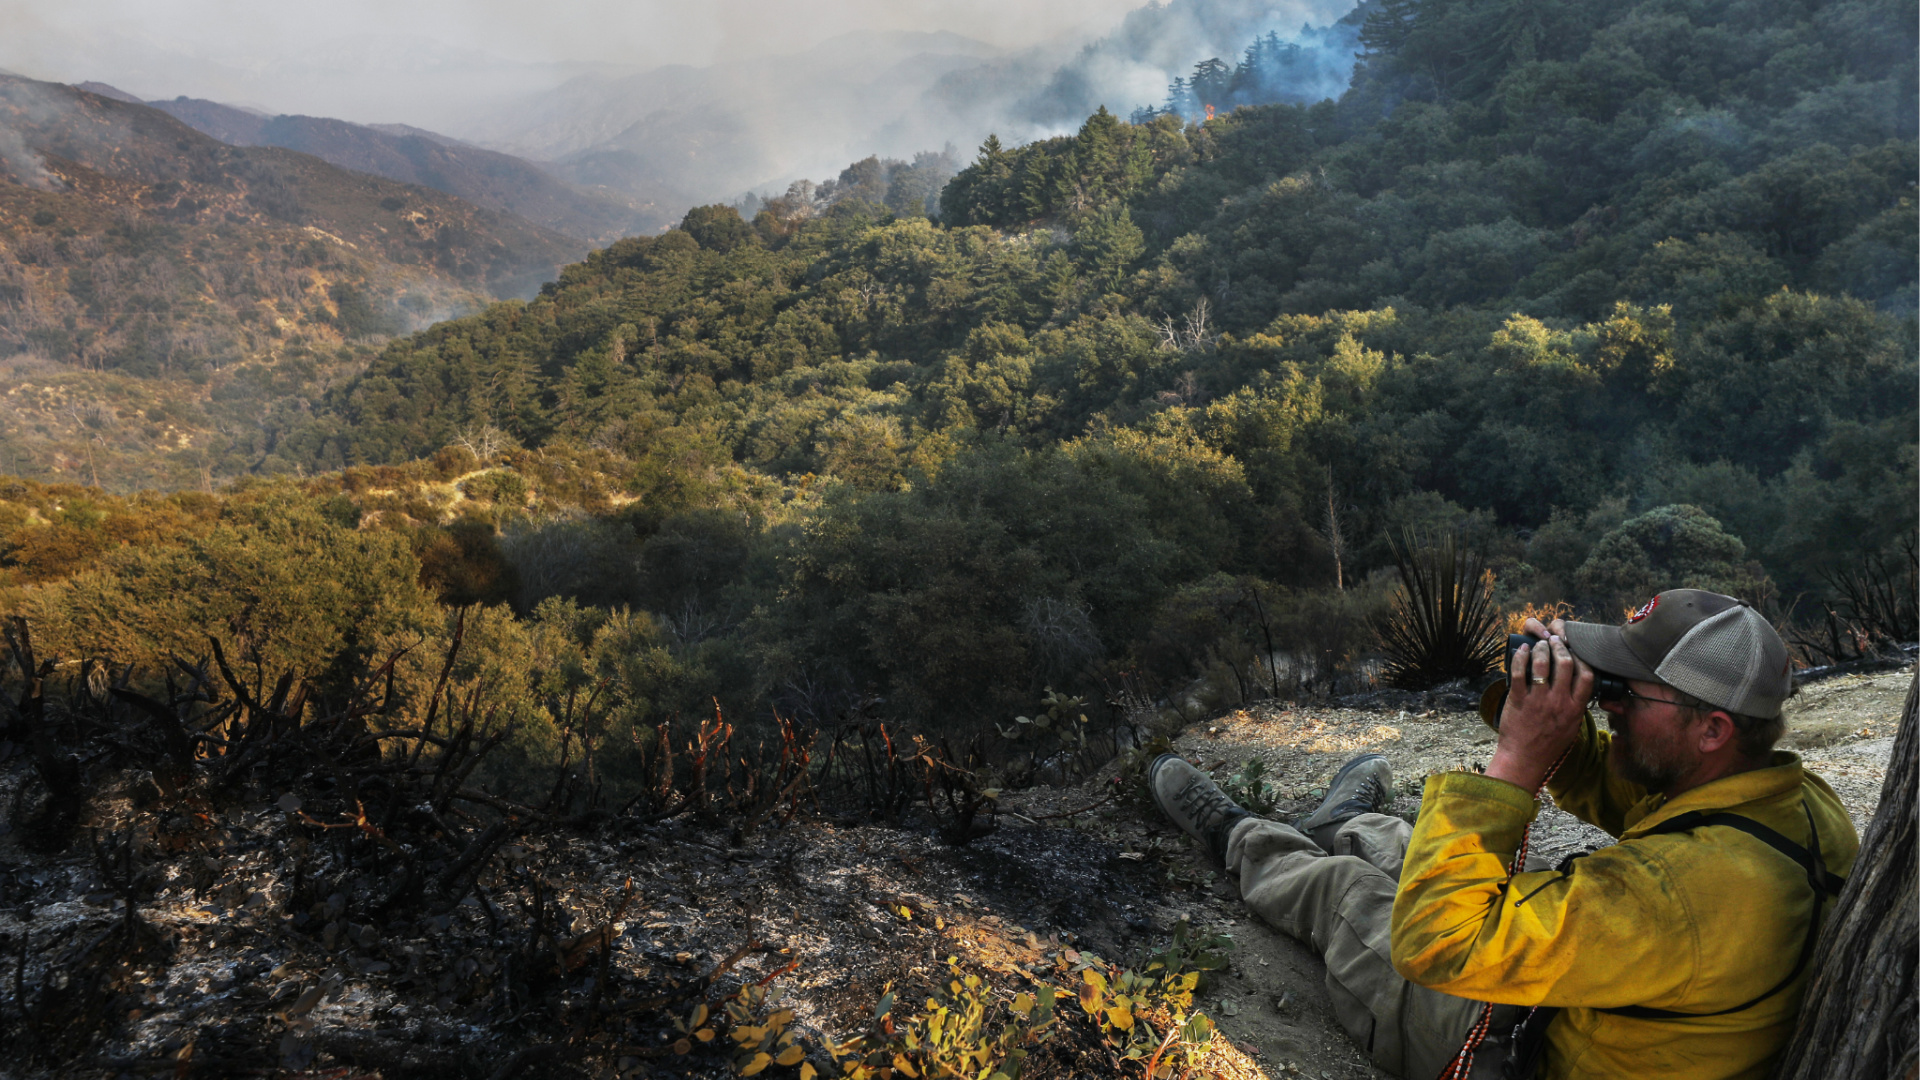 A firefighter keeps lookout from a ridge as smoke drifts during the Bobcat Fire in the Angeles National Forest on Sept. 23, 2020 near Pasadena. (Mario Tama/Getty Images)